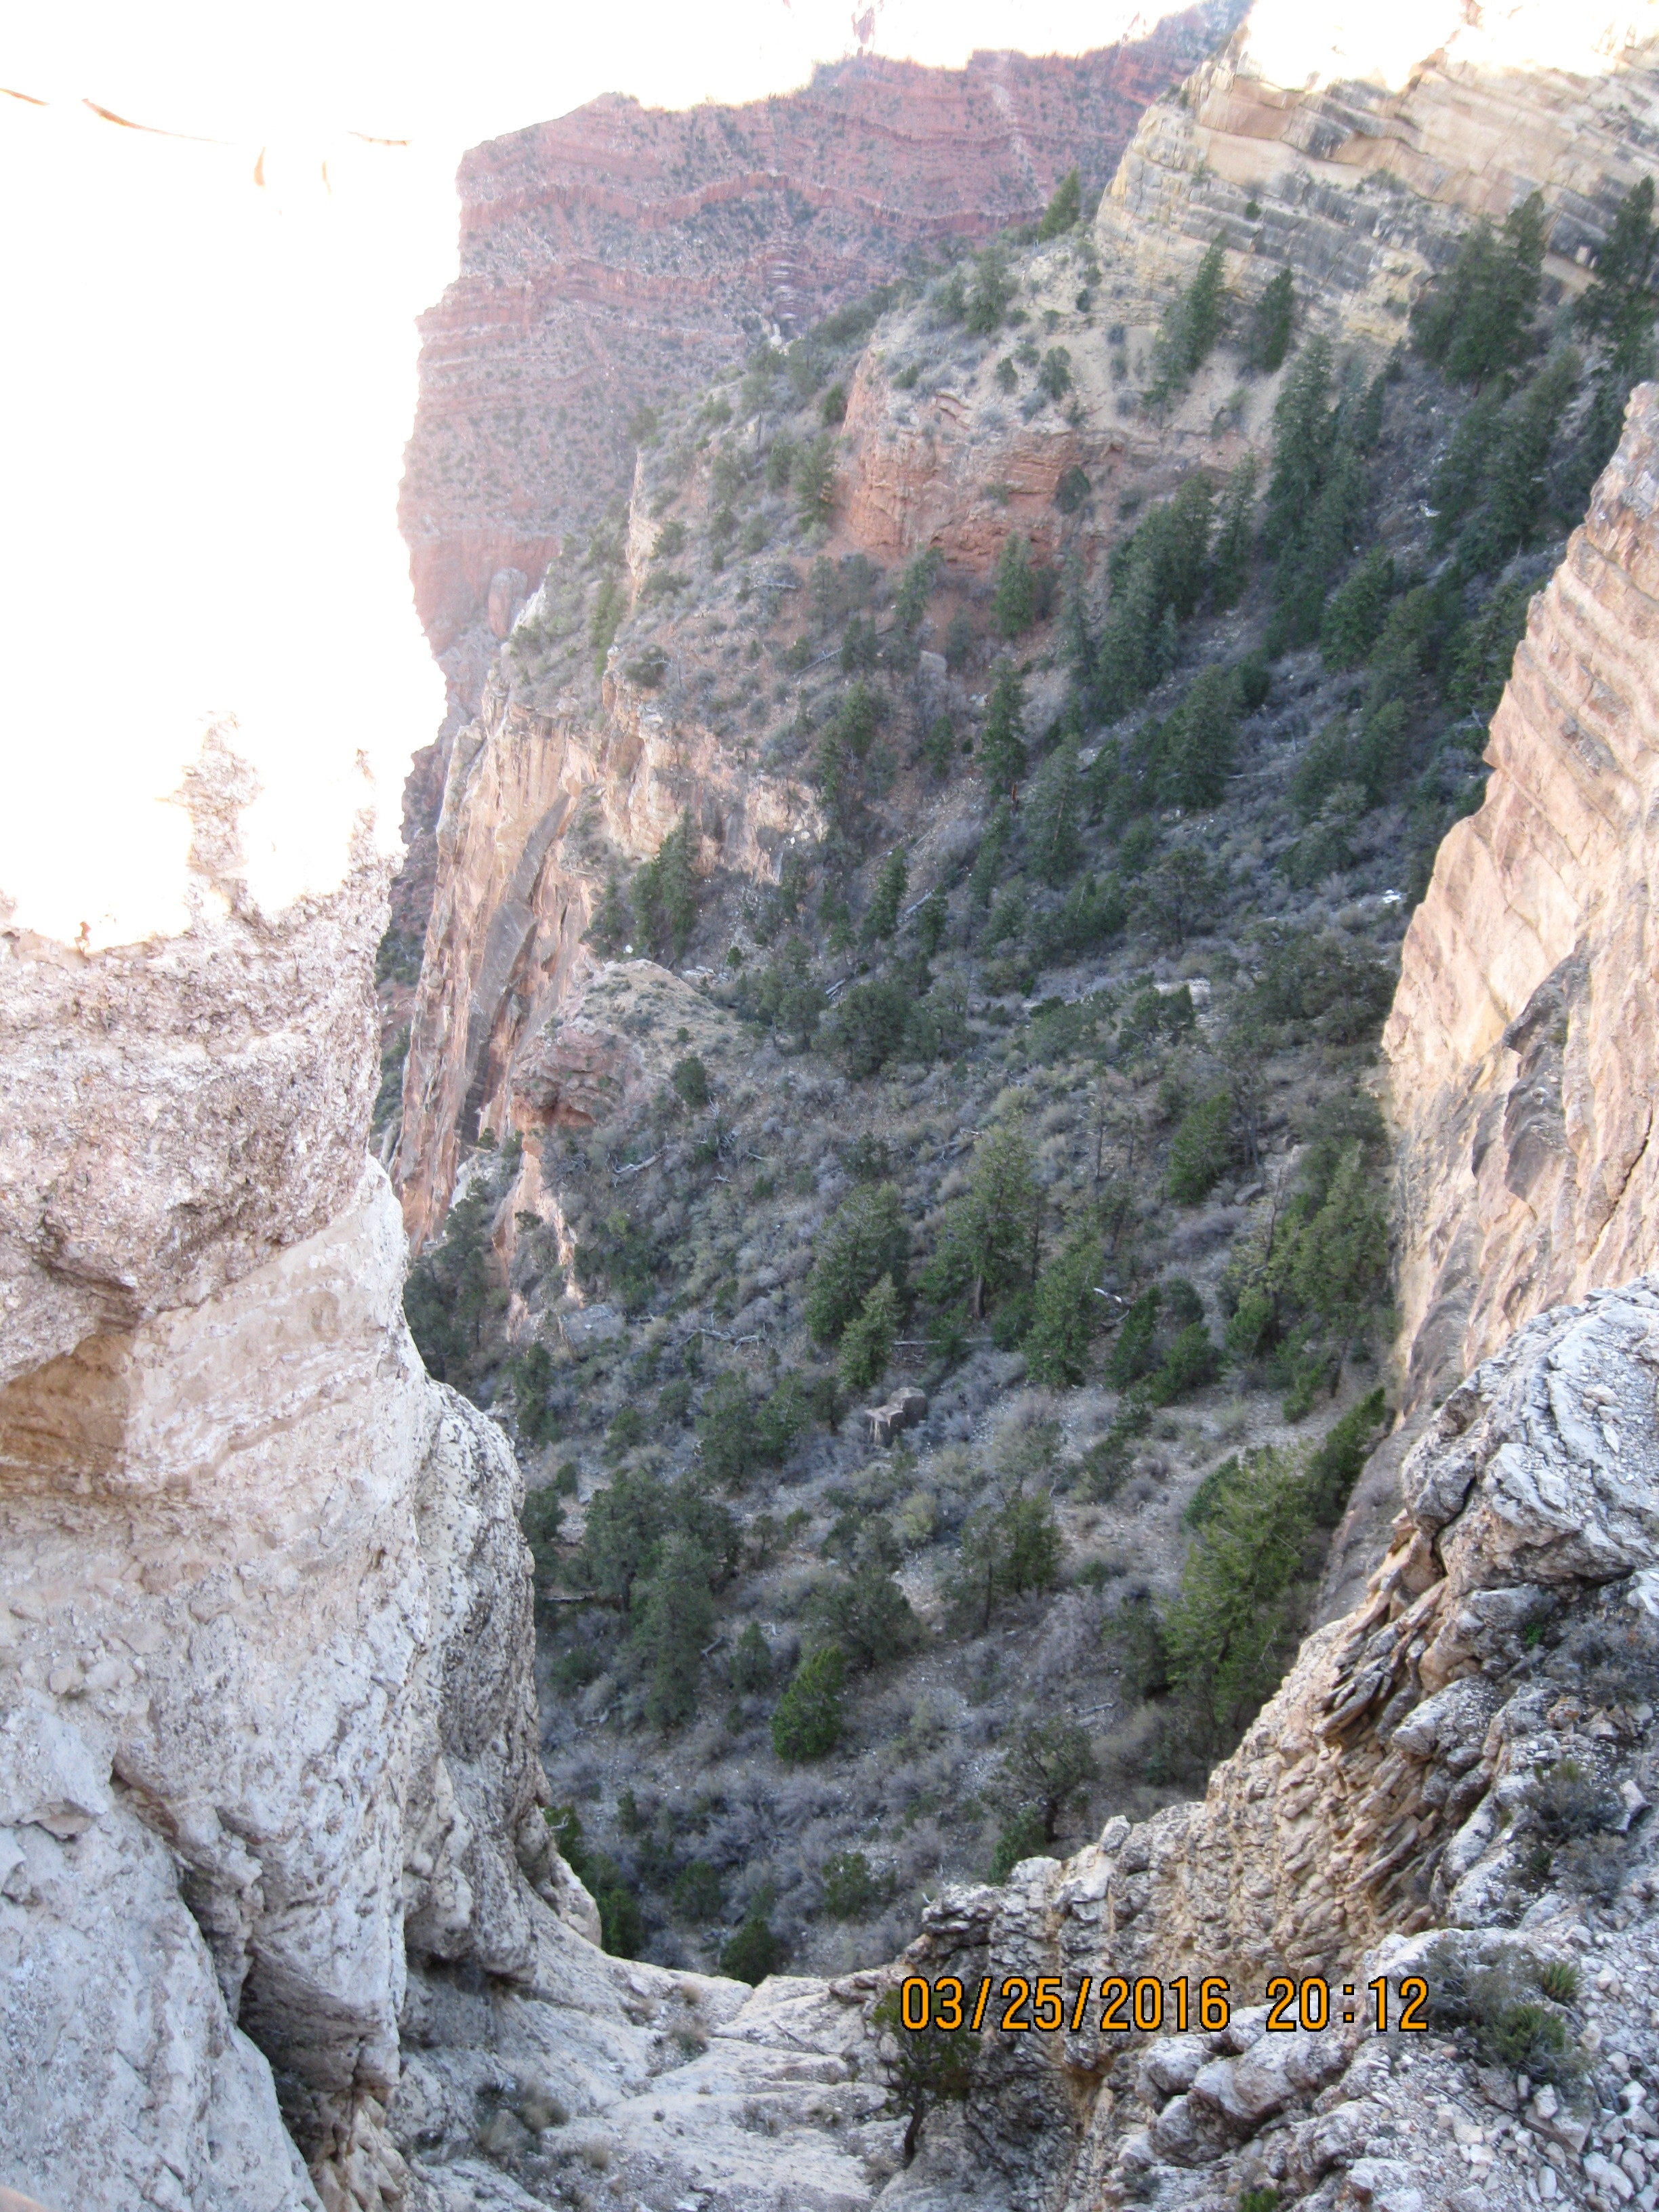 Picture from sipra's trip to the American Southwest.